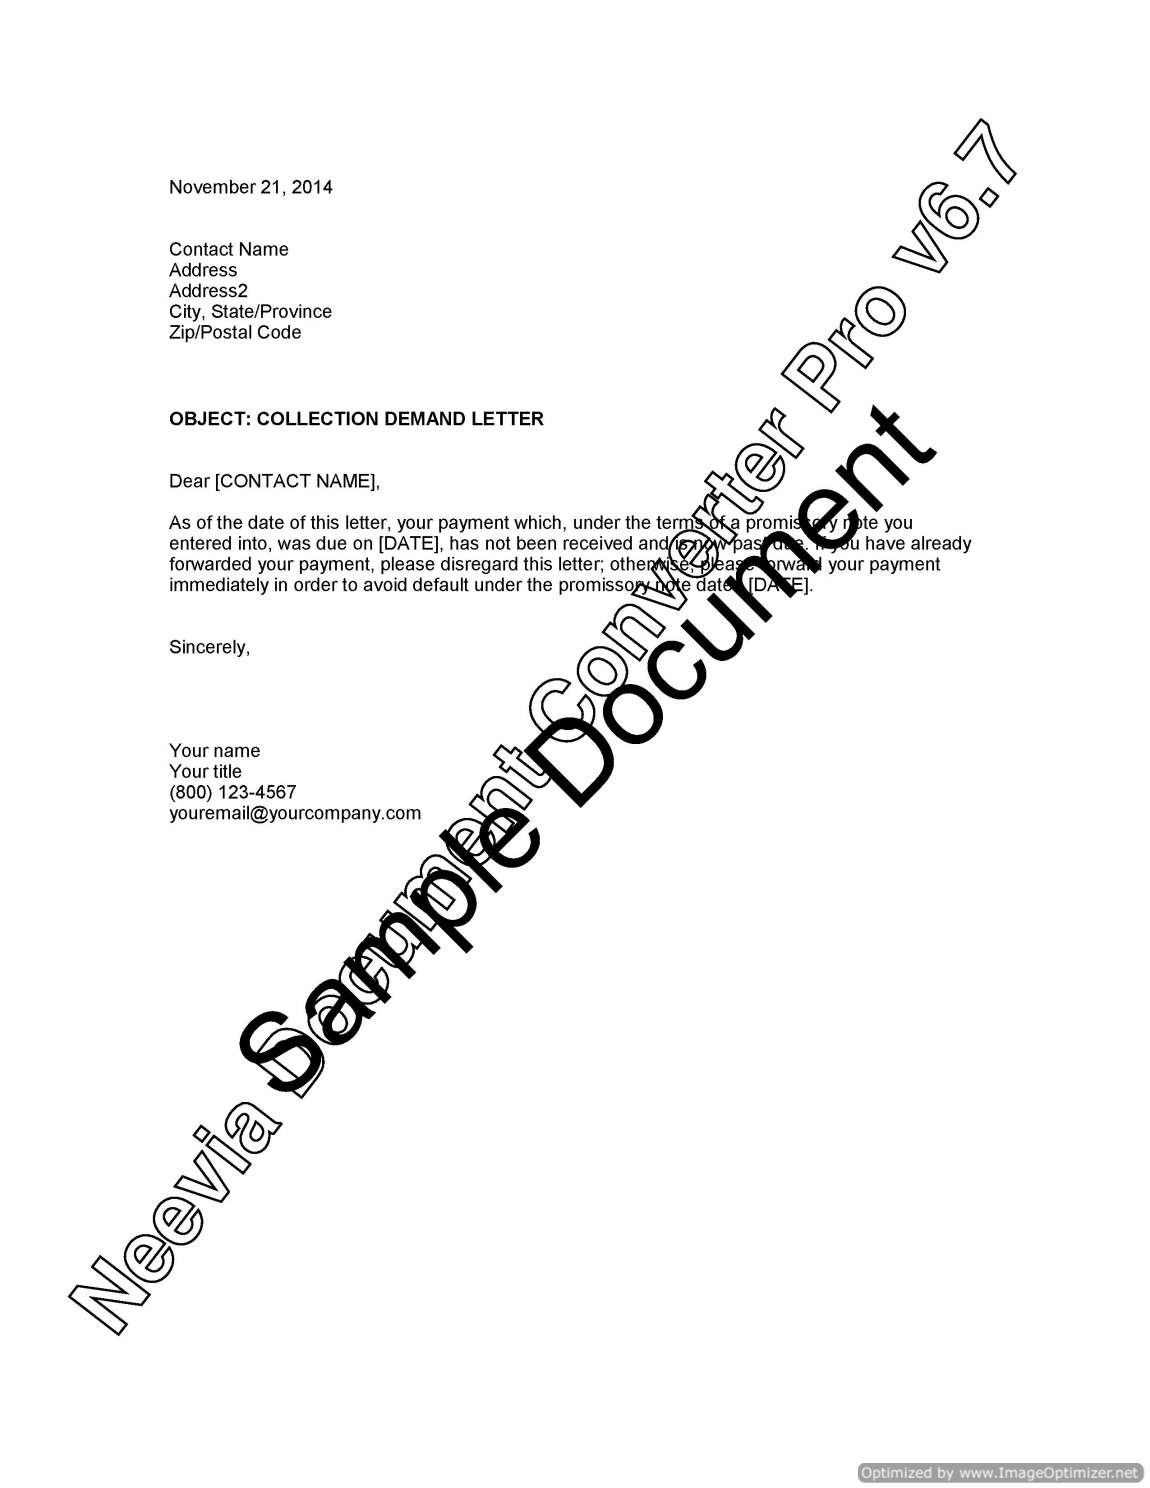 Sample Letter Requesting For Increase In Credit Limit